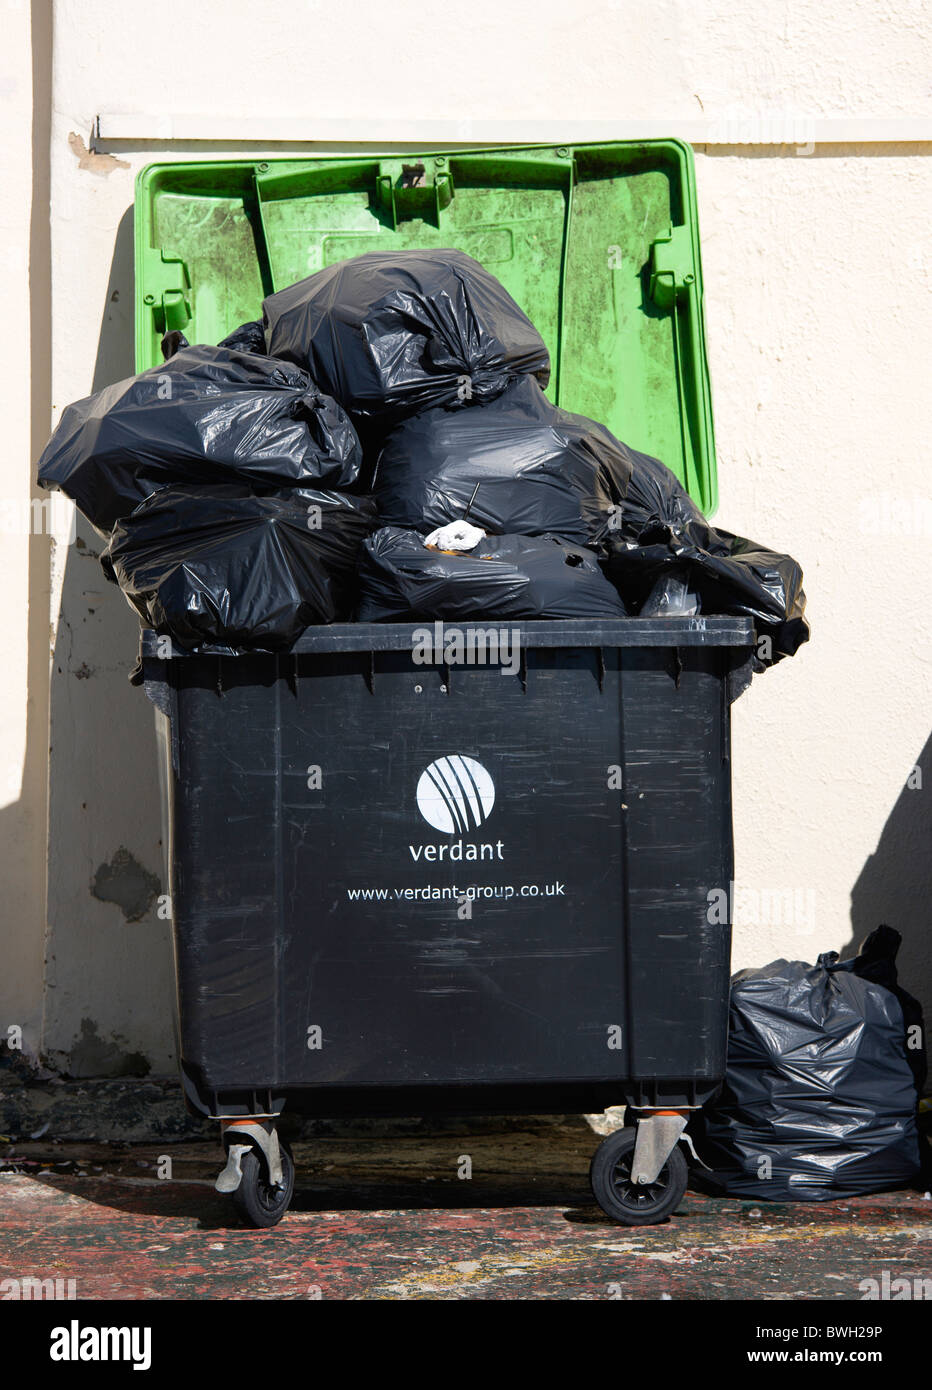 England, West Sussex, Bognor Regis, Wheeled waste bin container overflowing with full large black refuse sacks and - Stock Image